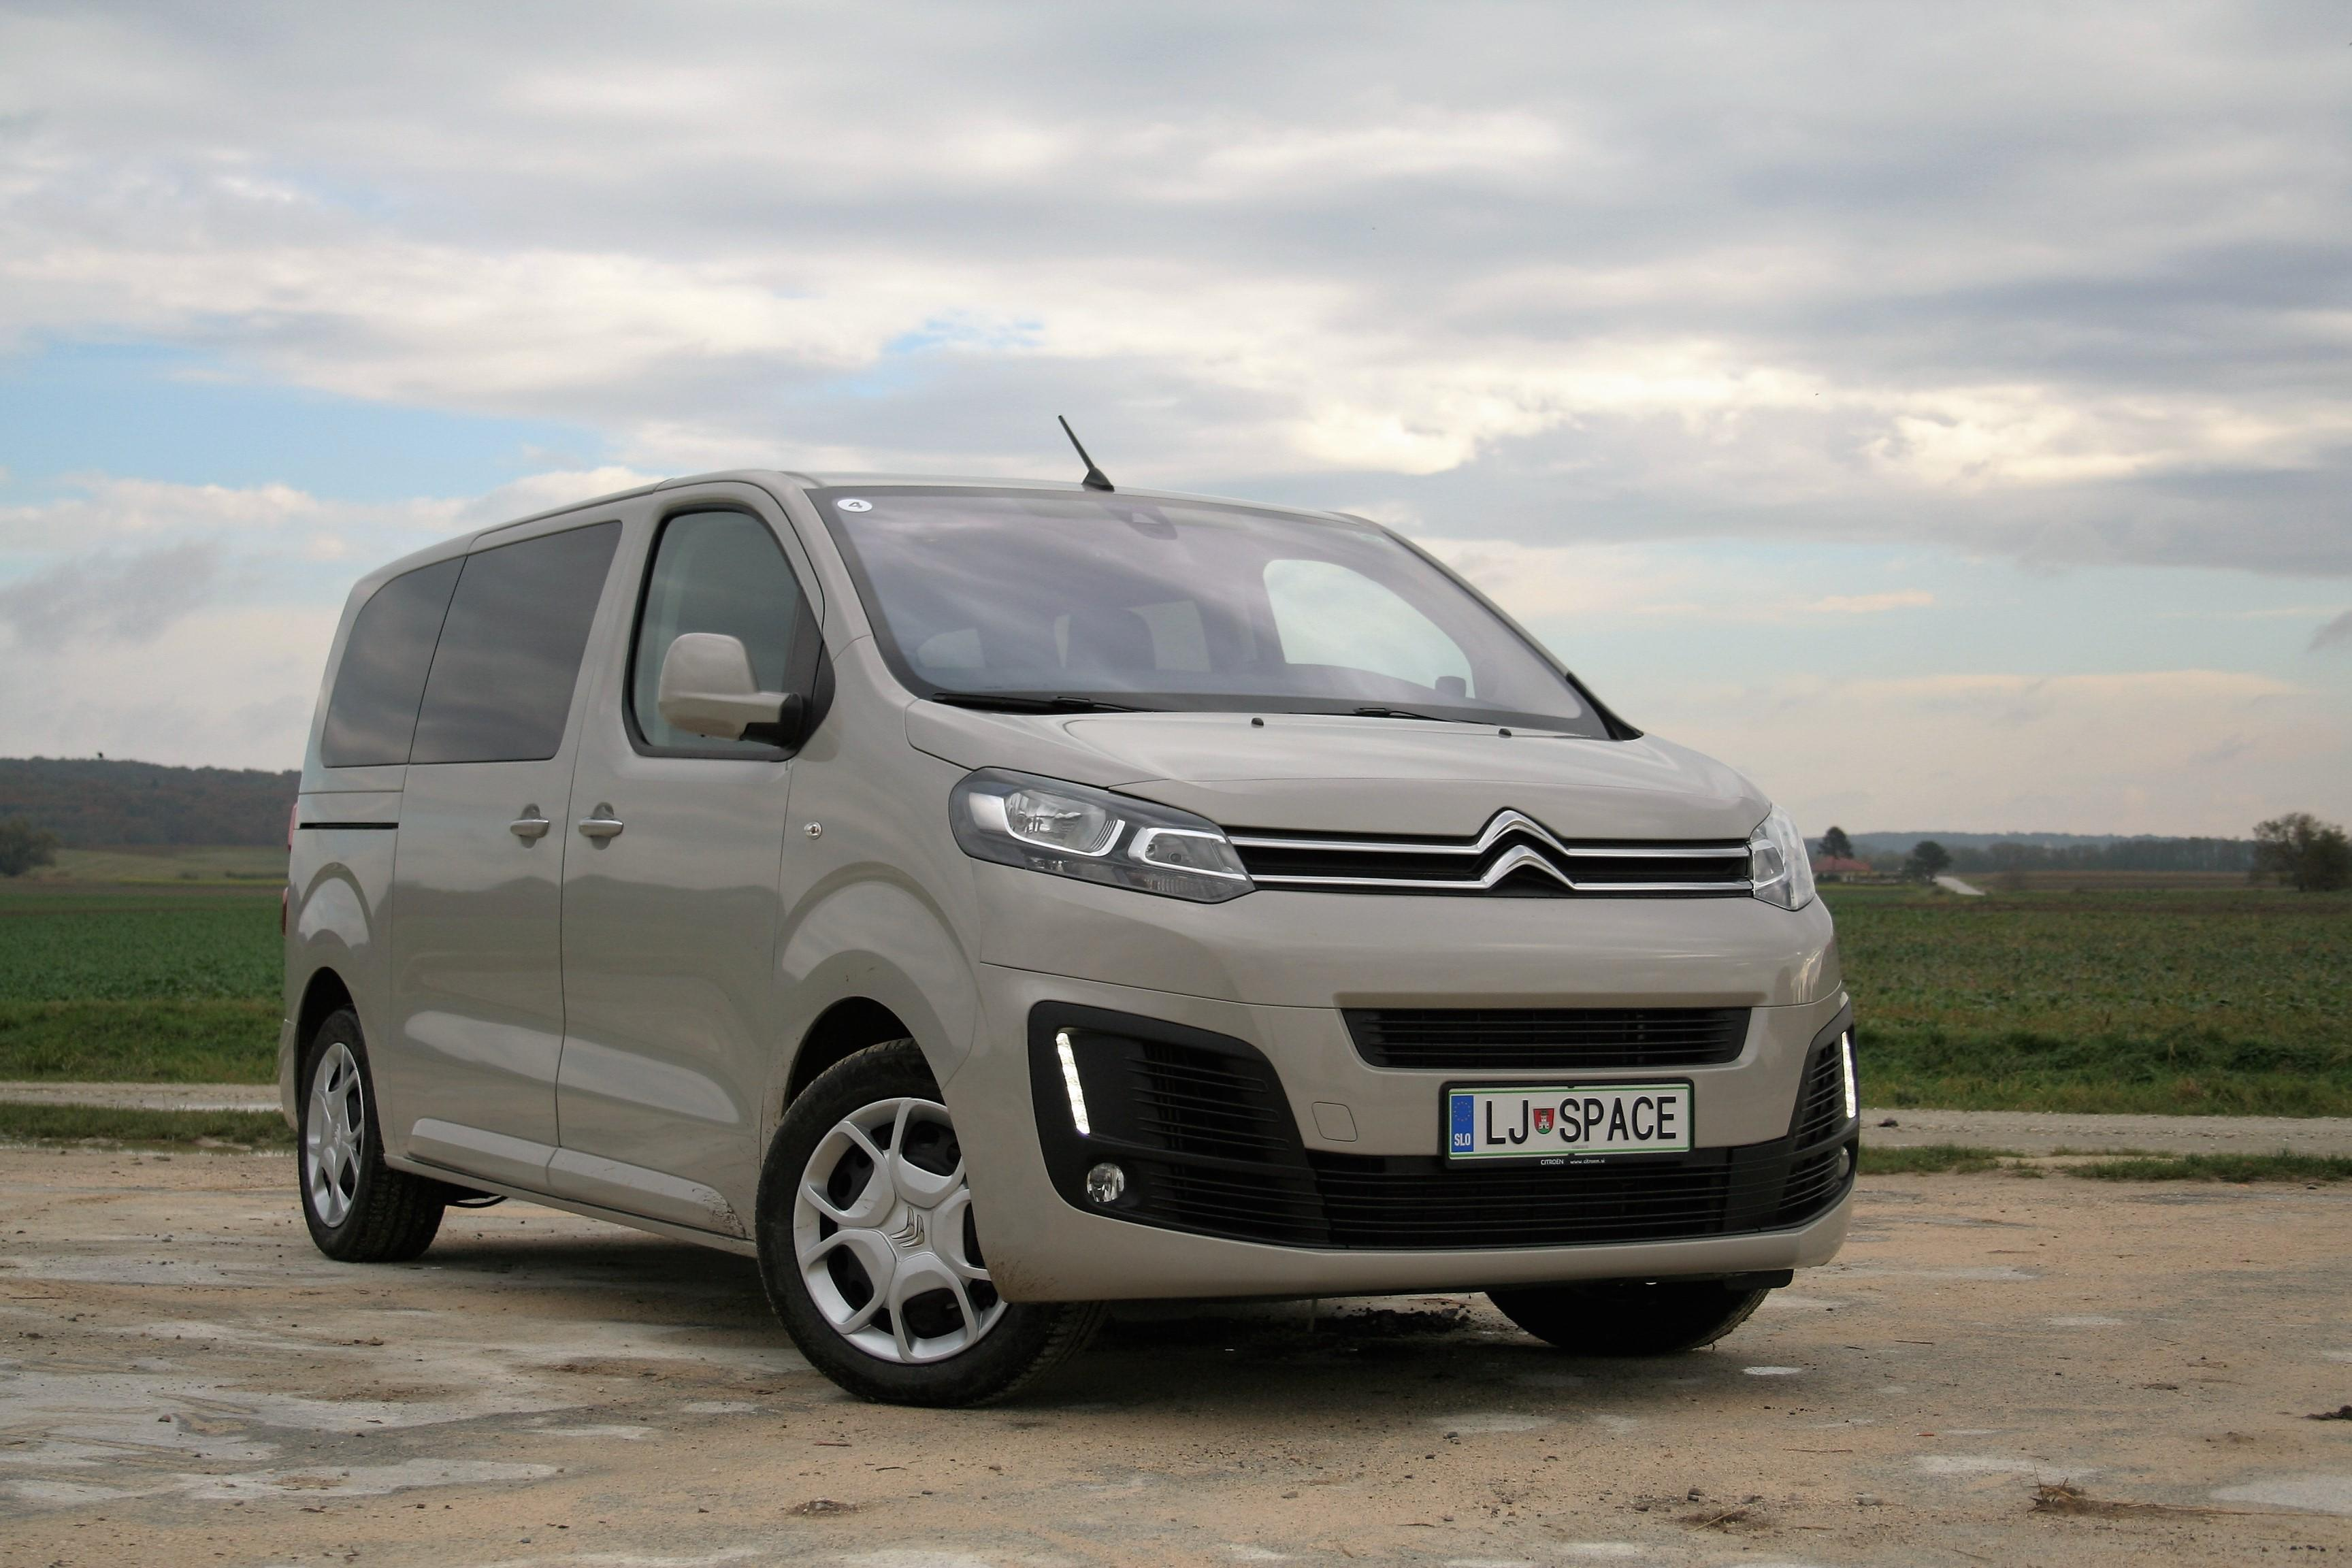 Citroen SpaceTourer minivan specifications